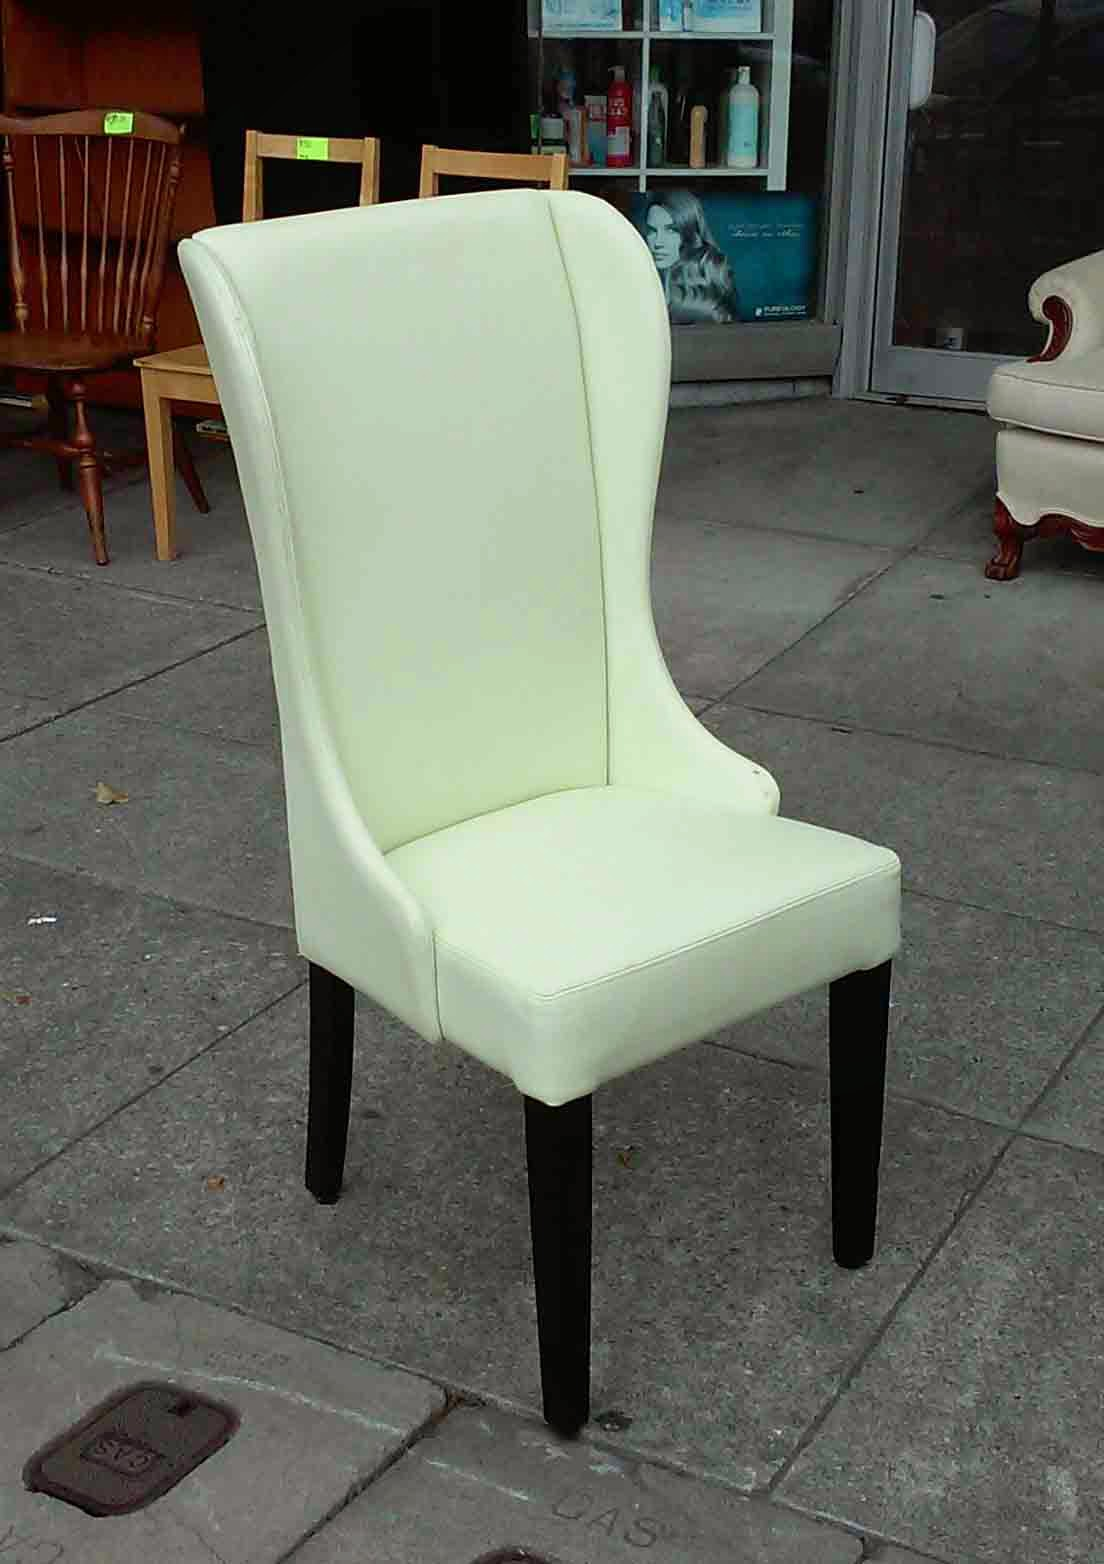 UHURU FURNITURE & COLLECTIBLES: SOLD **REDUCED** Lime